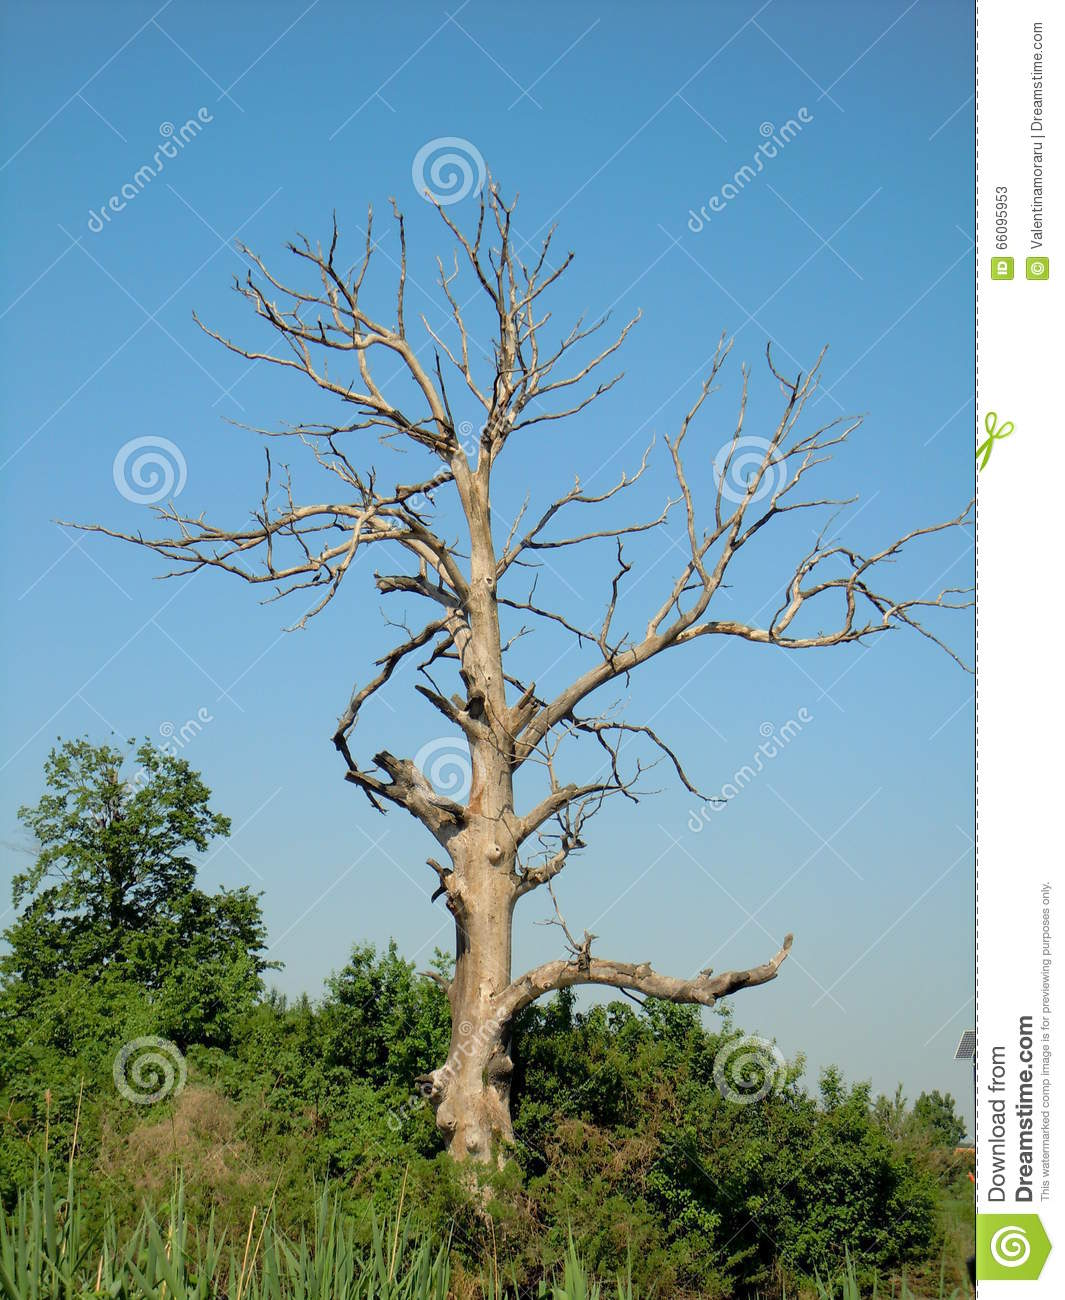 Old withered tree stock image. Image of nature, dying ...